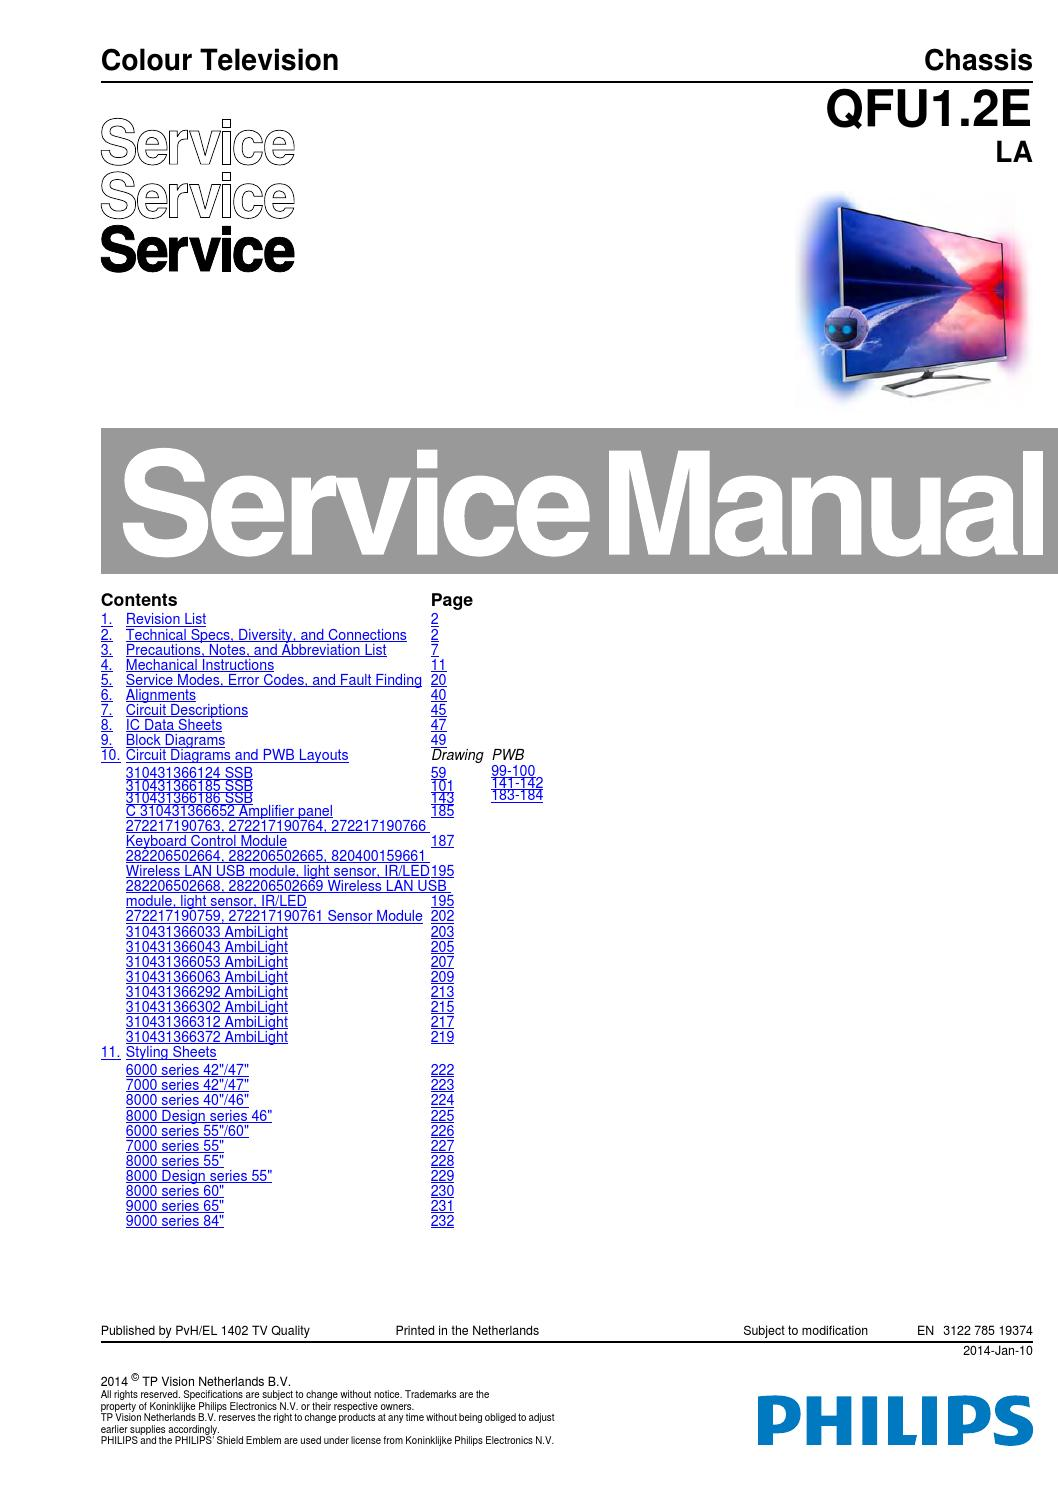 Manual De Servio Televisor Philips Modelo 40pfl8008s12 Chassis Qfu1 Download Circuit And Wiring Diagram Schematic For Qfu12e La By Portal Da Eletrnica Issuu